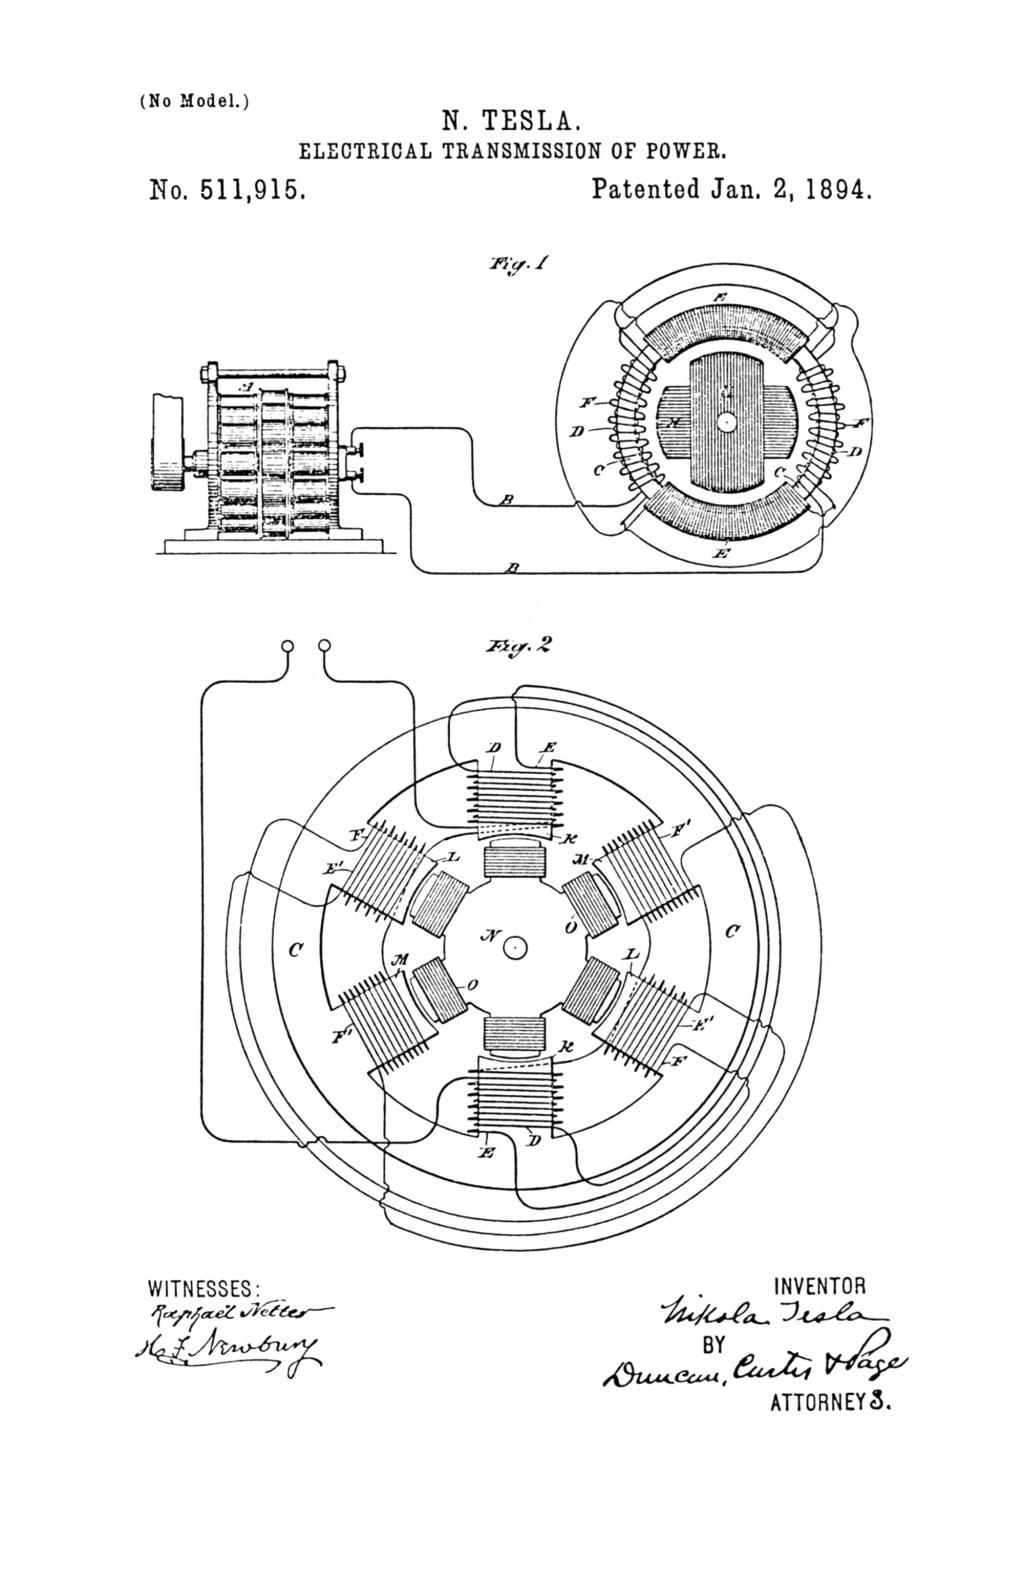 Nikola Tesla U.S. Patent 511,915 - Electrical Transmission of Power - Image 1